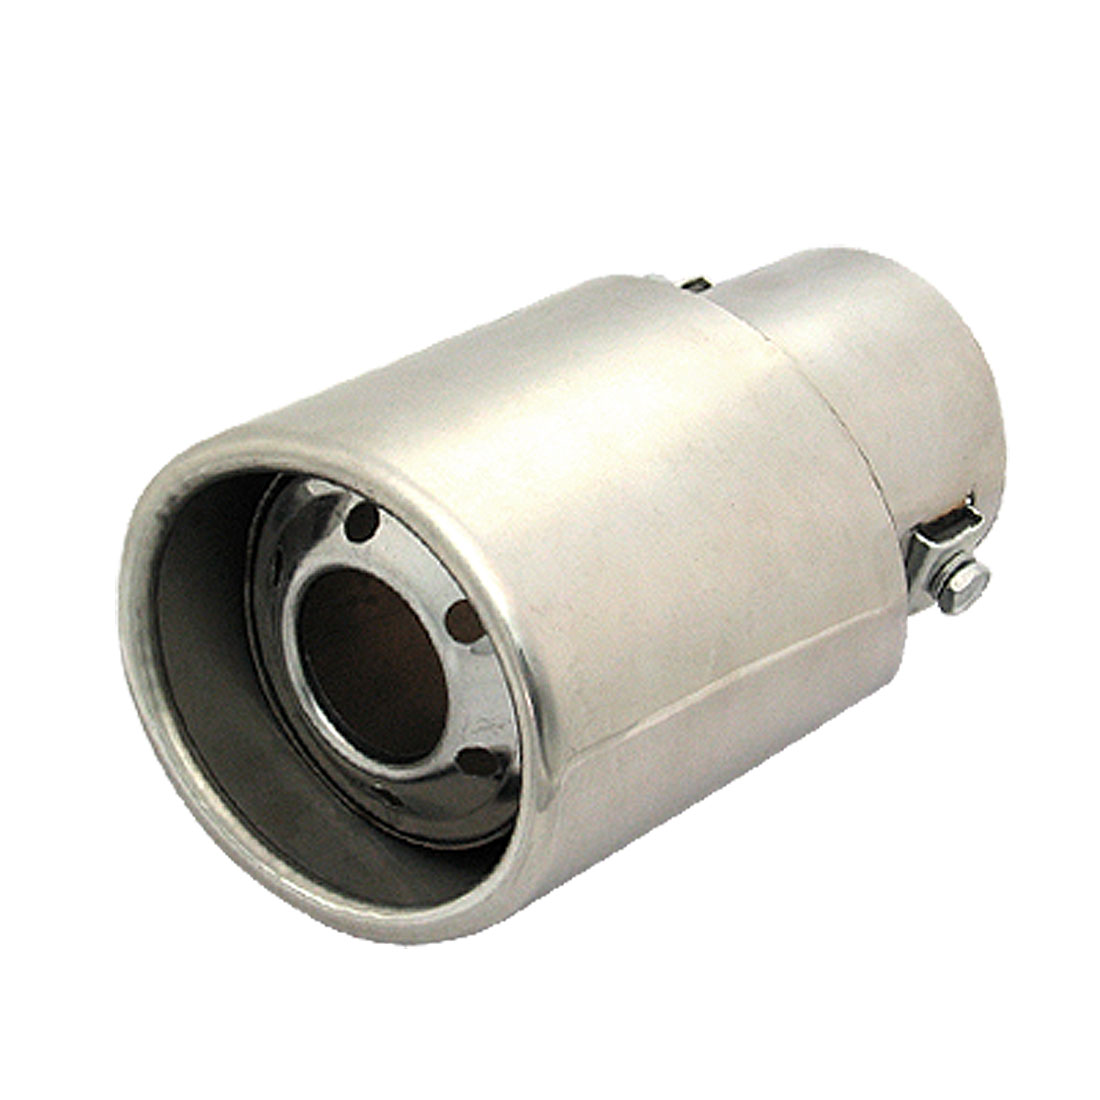 """Fit Diameter 61mm / 2.40 inches Oval Outlet Universal Car Auto Exhaust Pipe Muffler 5.8"""" X 3.4""""x 2.55"""" (LWT) Discount 50(China (Mainland))"""